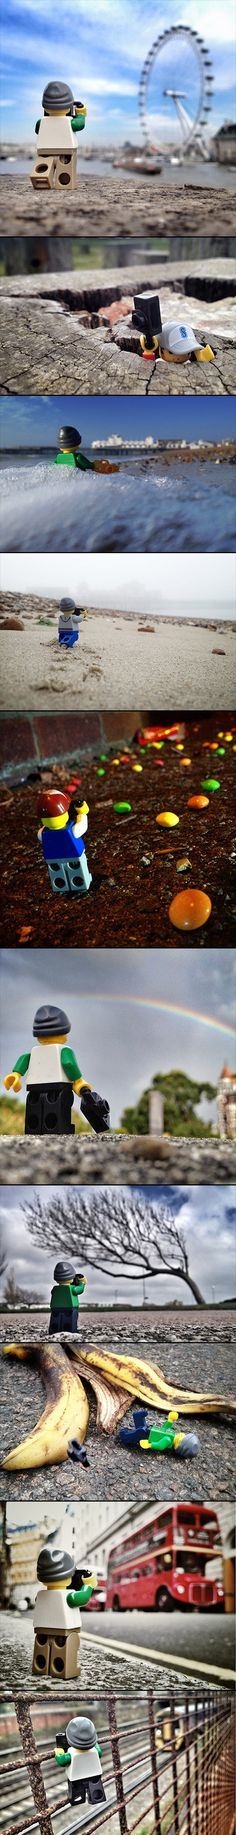 Photographer Andrew Whyte has found a new way to incorporate LEGOs into the world in his series, The Legographer. The whimsical collection features a little LEGO figure placed into all kinds of fun and unexpected settings Figure Photography, Lego Photography, Creative Photography, People Photography, Photography Ideas, Legos, Lego People, Creative Landscape, Lego Figures